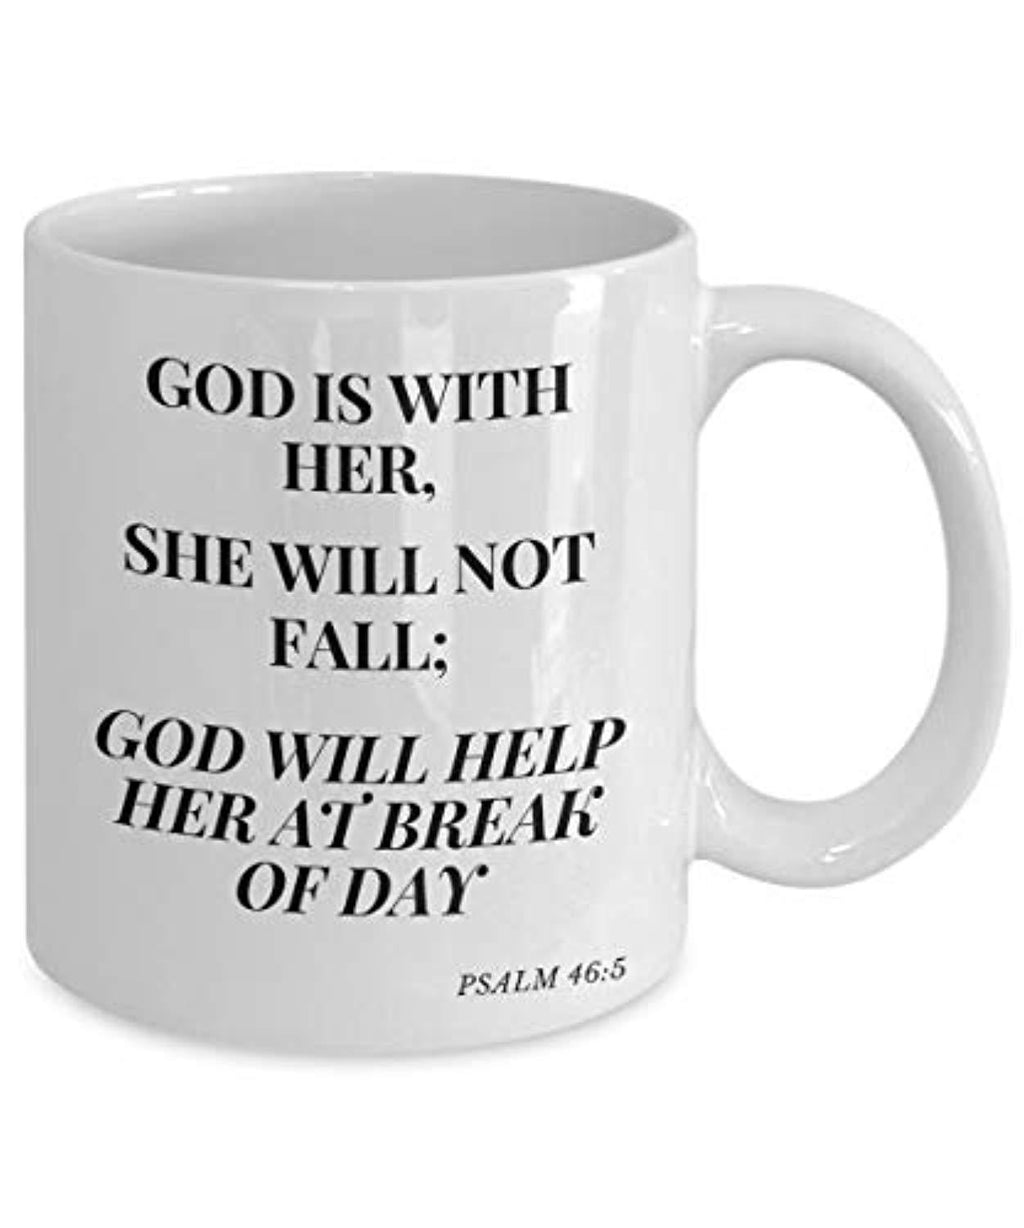 God Is With Her She Will NOt Fail God Will Help Her At Break OF Day Psalm 46:5 Coffee Ceramic Mug (11 oz)